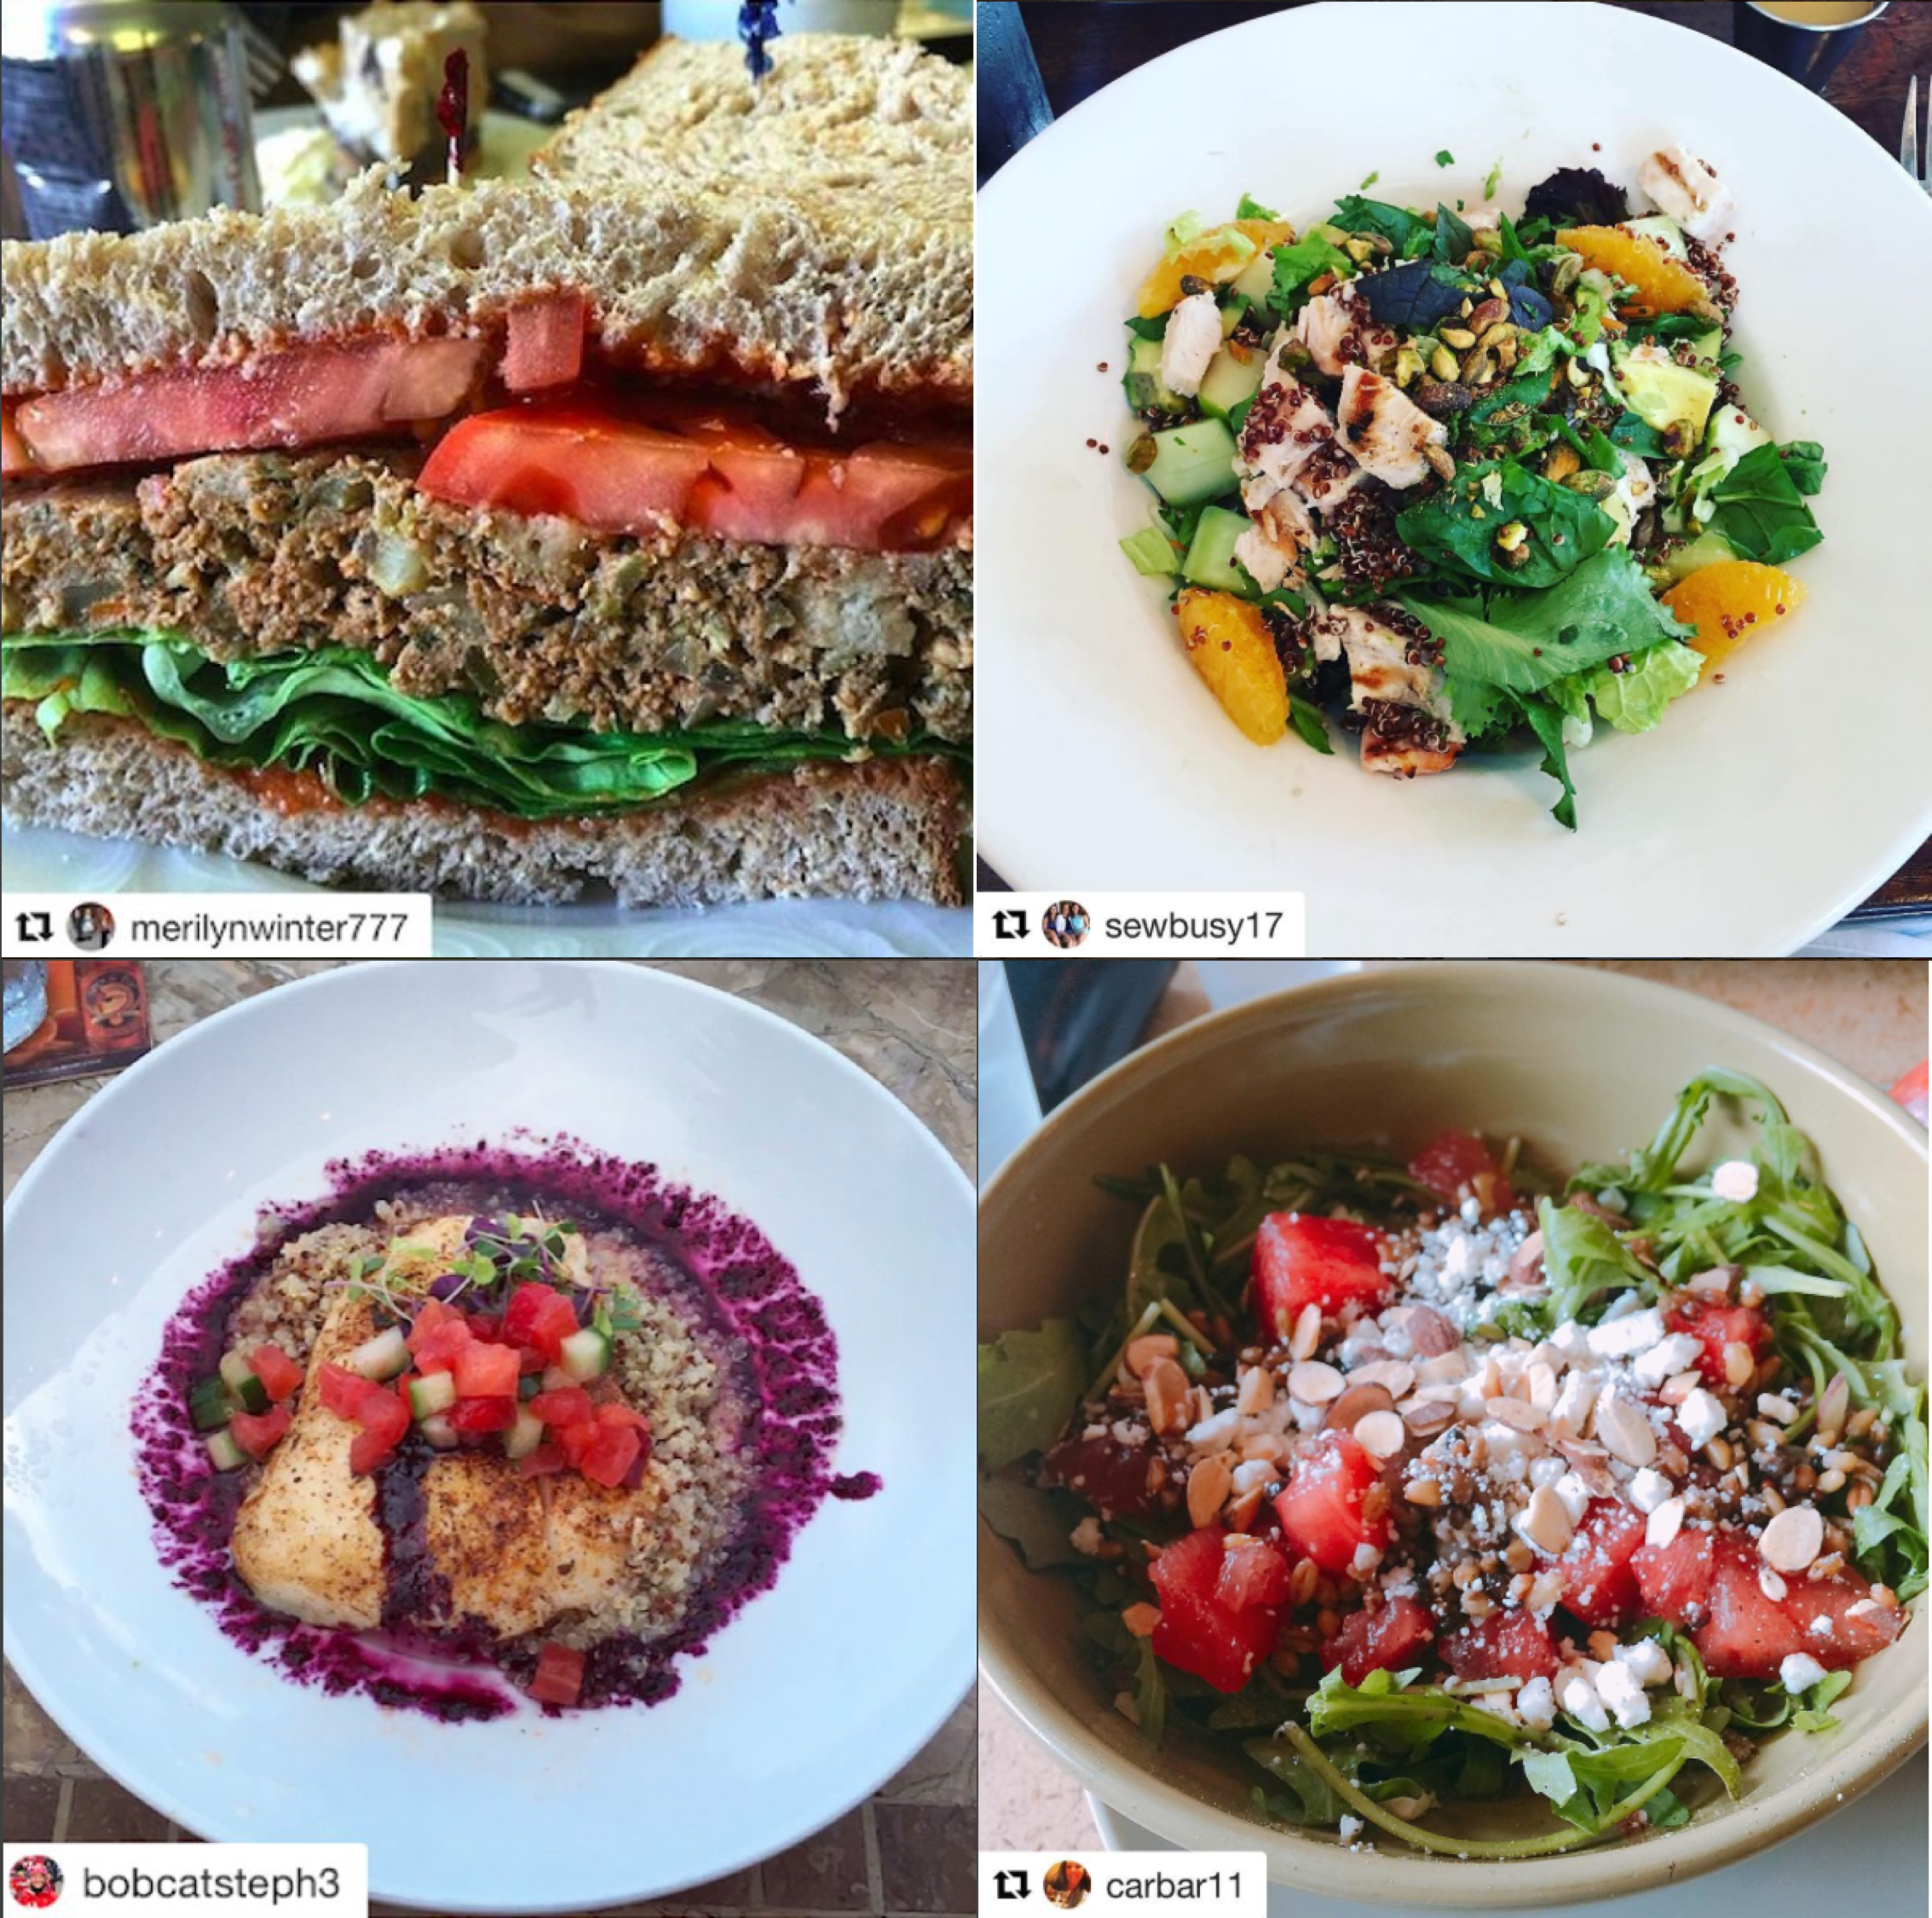 photos of winning entries for 2016 whole grains month contest